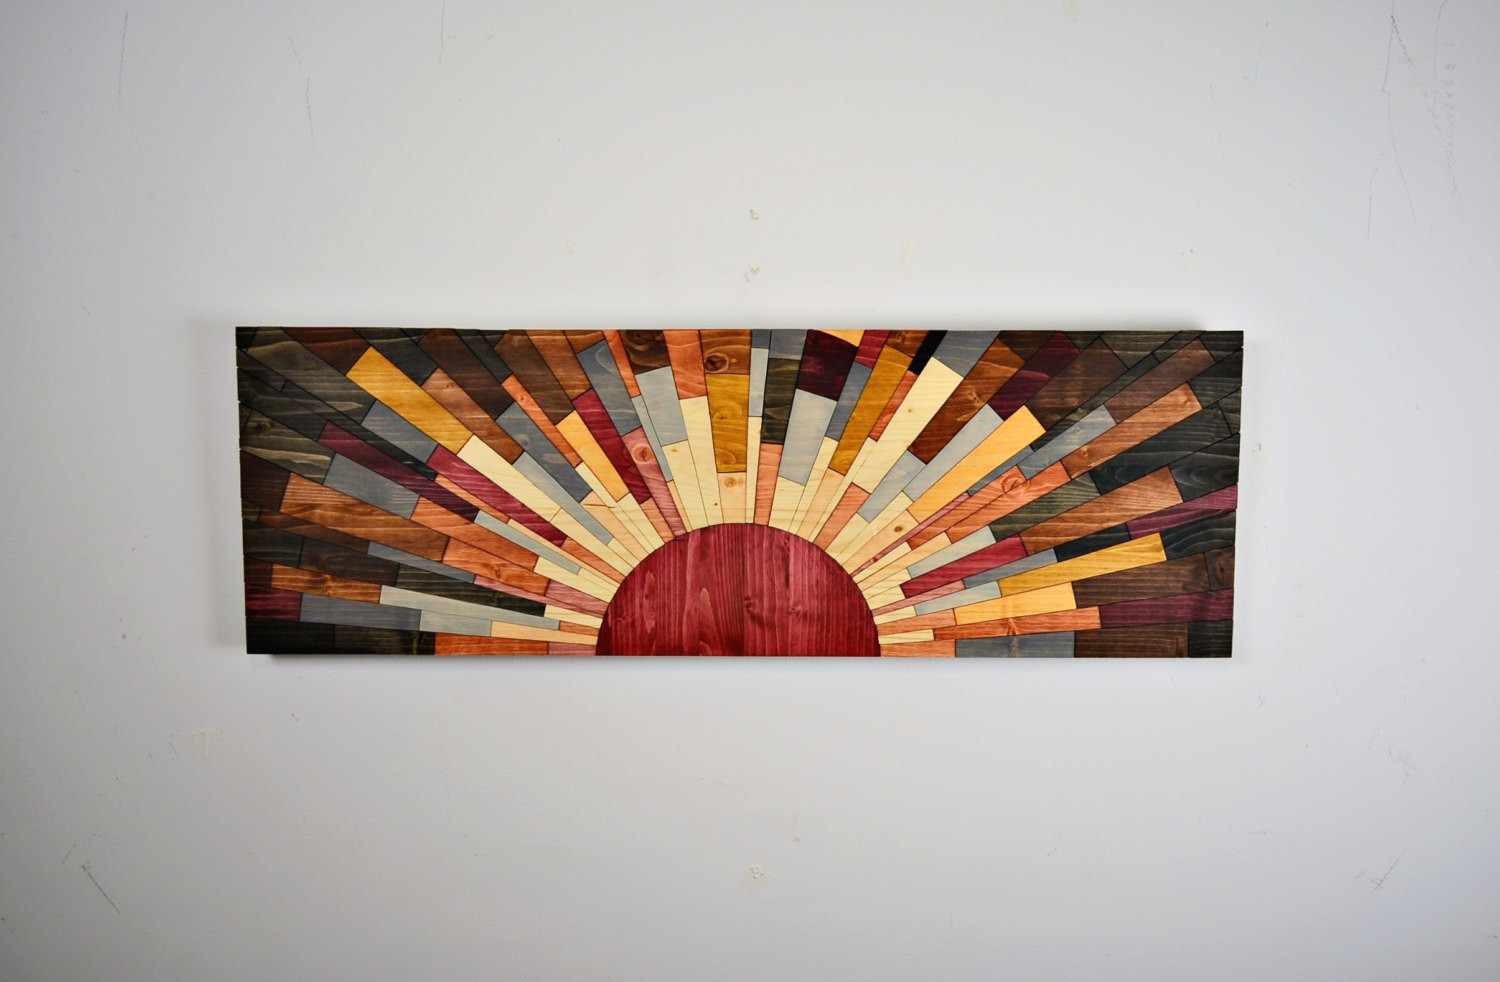 Best ideas about Wooden Wall Art . Save or Pin Wood wall art EDGE of THE DAY wooden wall art Now.